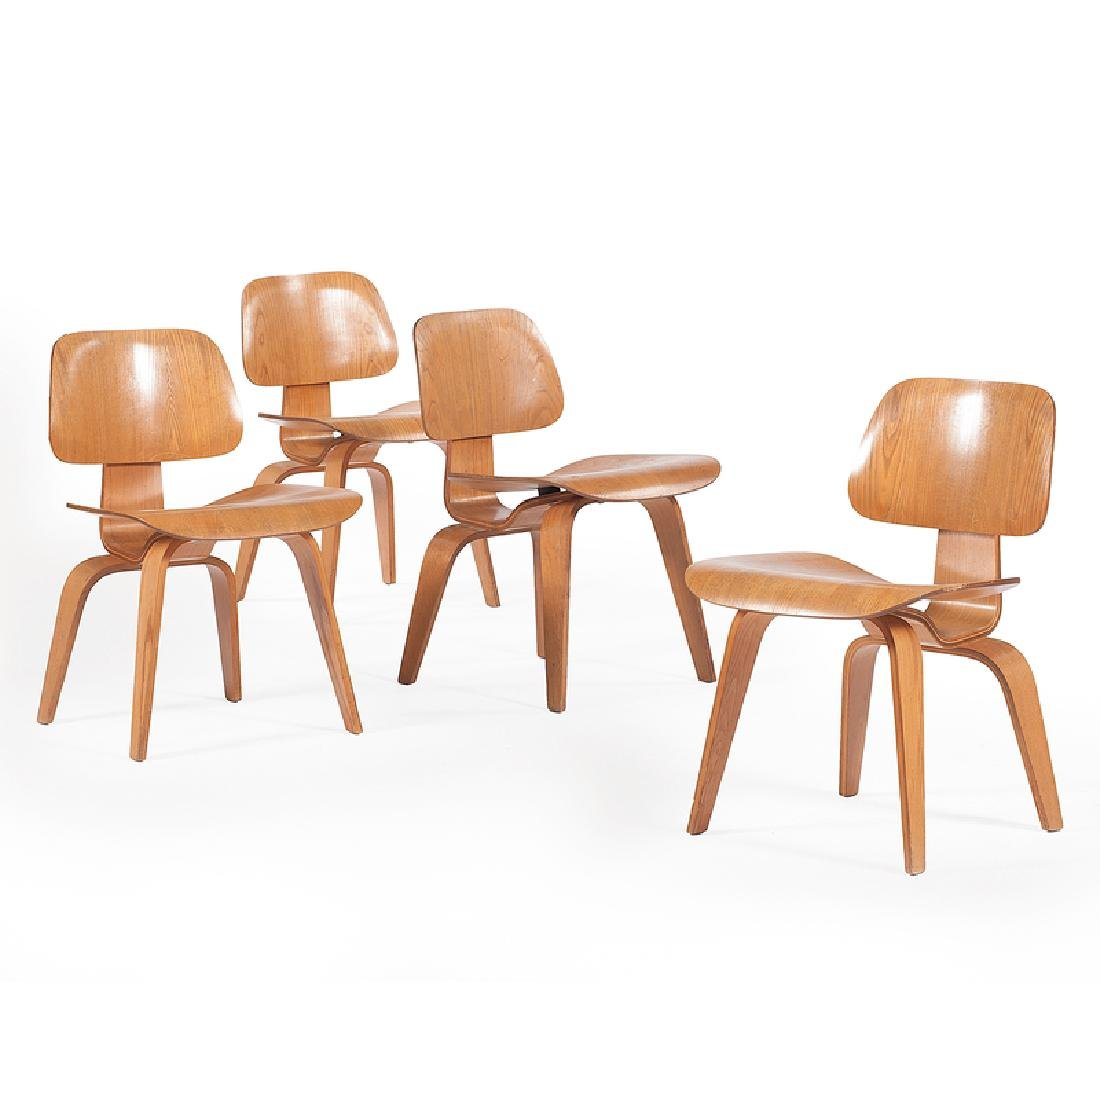 Charles and Ray Eames for Herman Miller, DCW Chairs